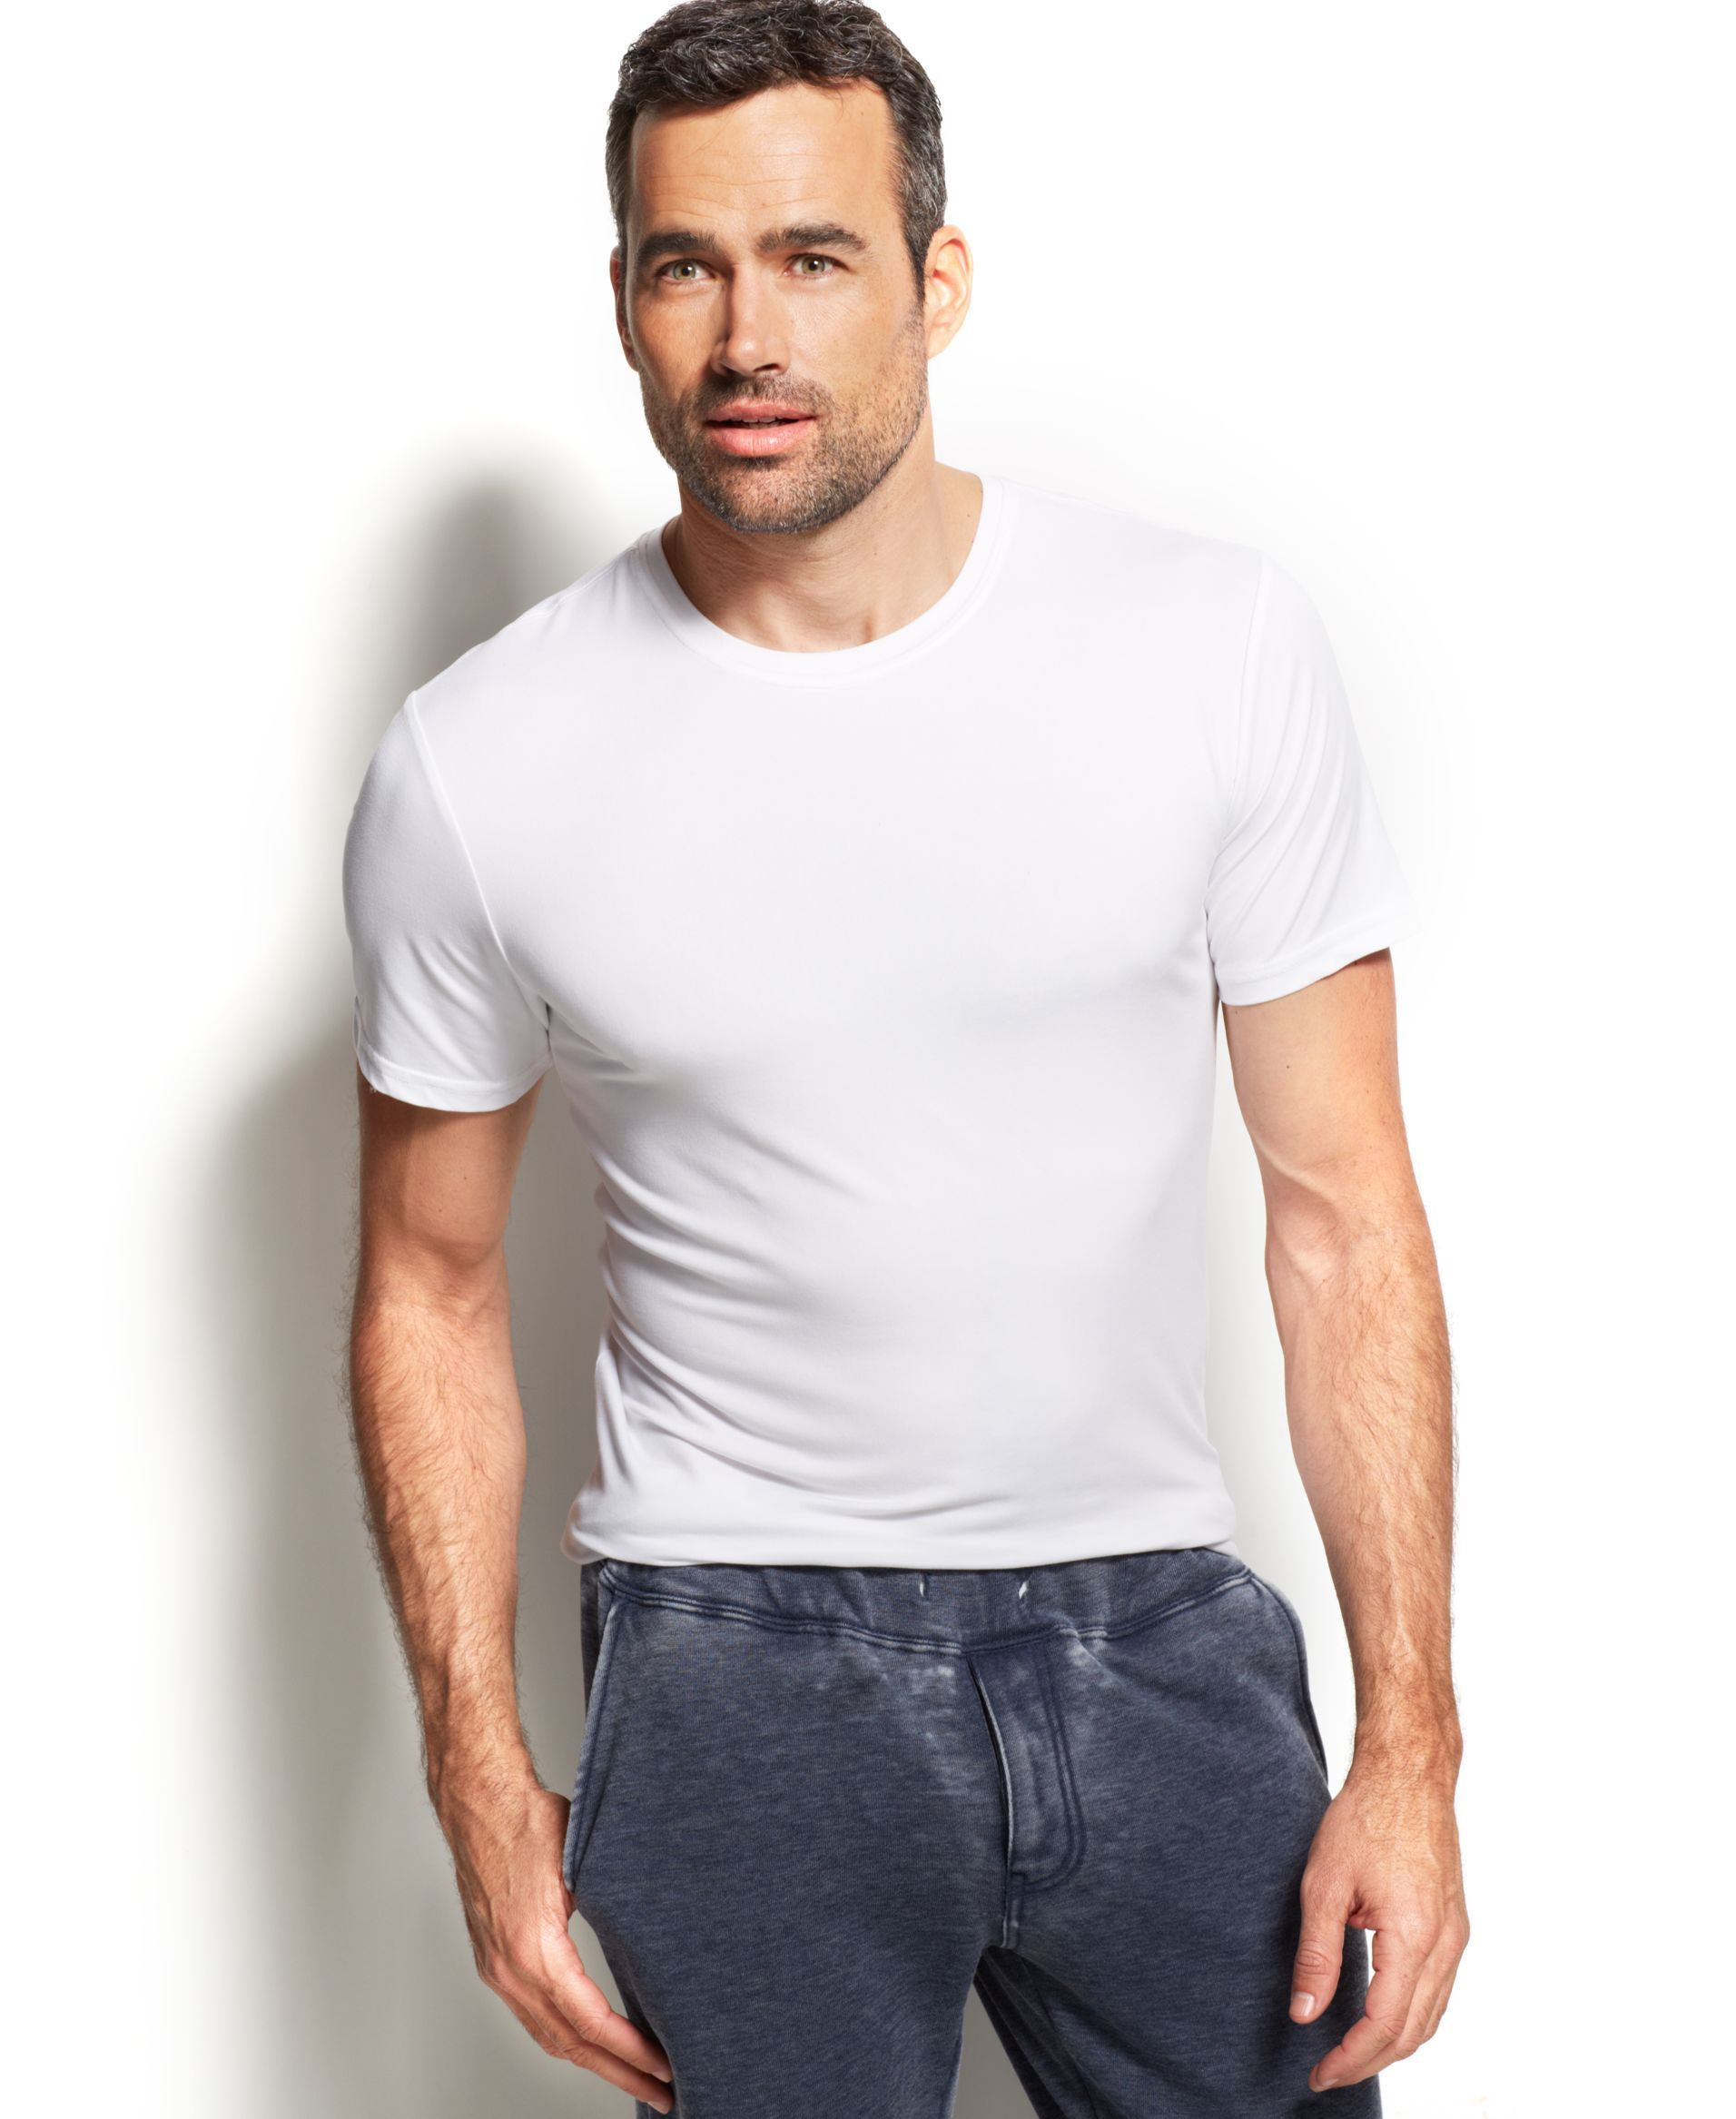 eeb29b85d Men's Cool Ultra-Soft Light Weight Crew-Neck T-Shirt | 服 | Shirts ...